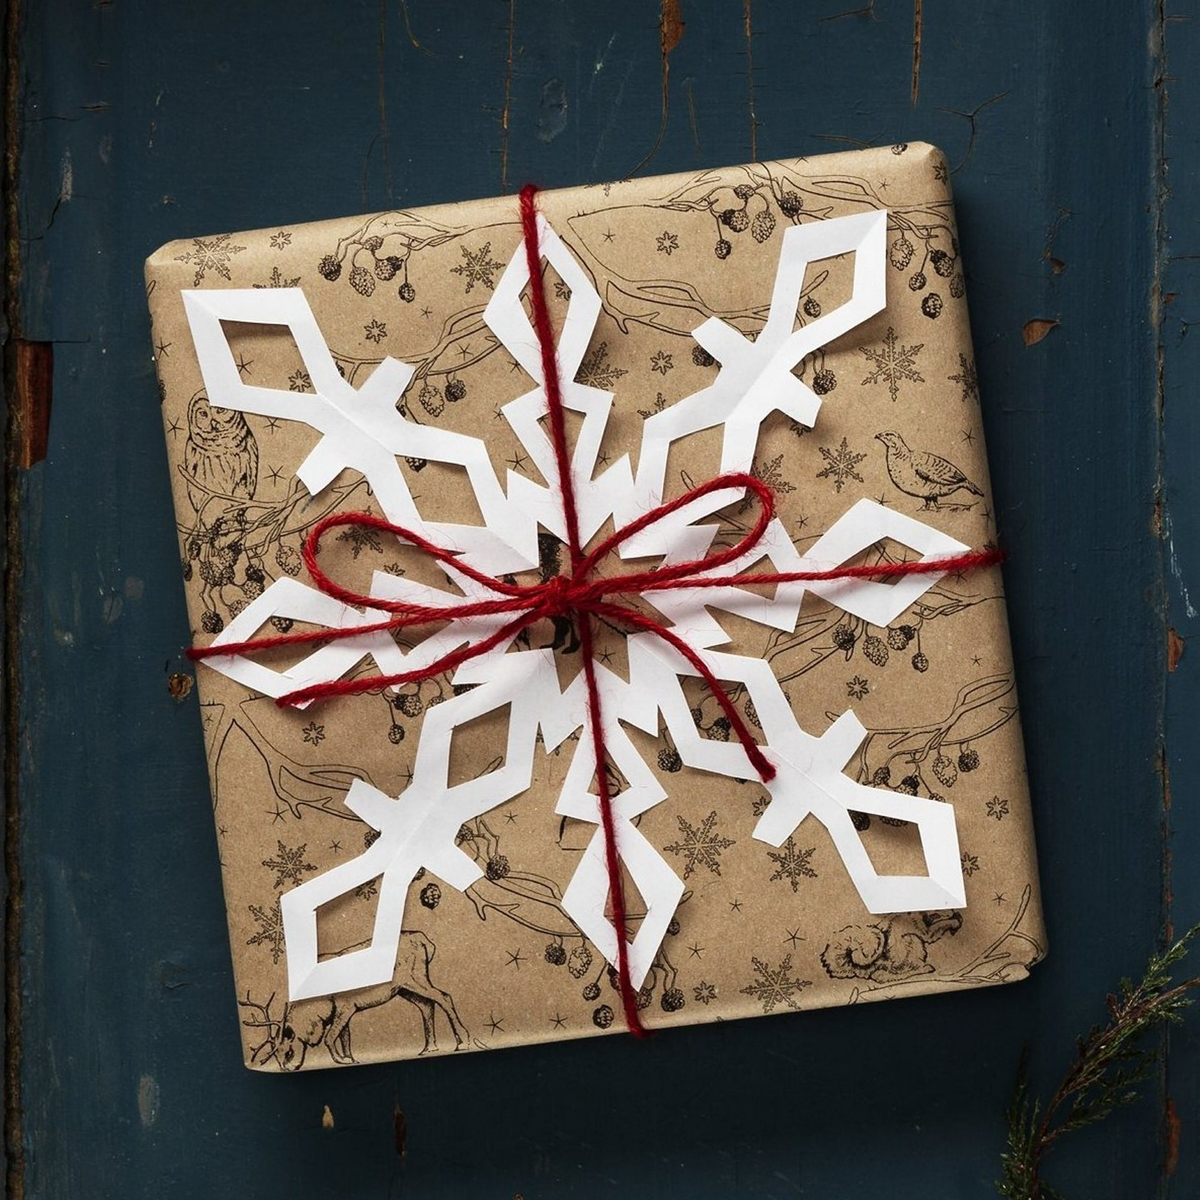 Video tip 2: Christmas gifts with snowflakes